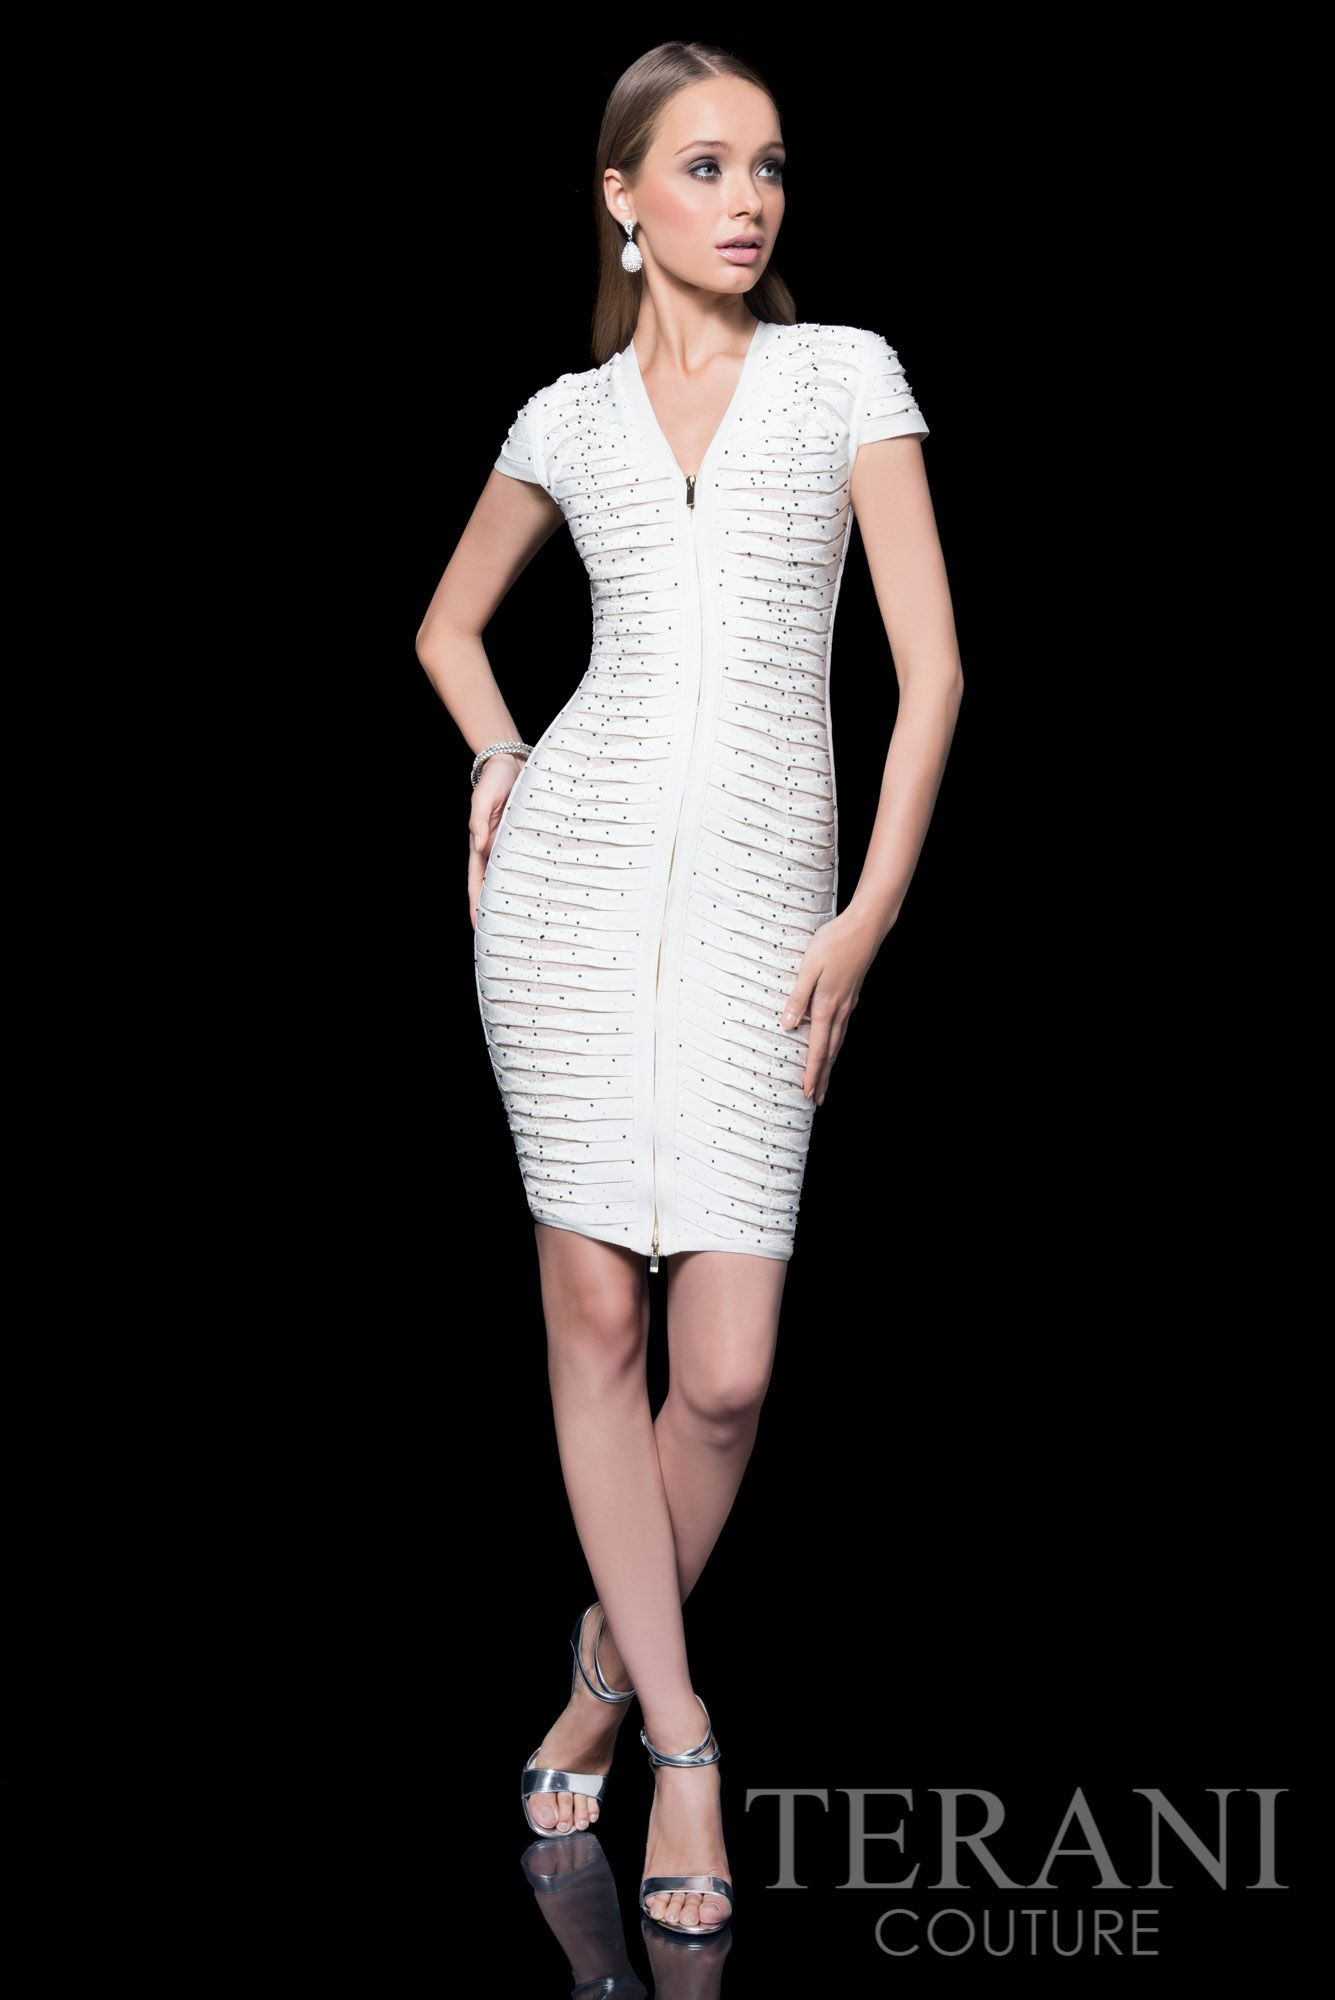 Terani Couture cap sleeve cocktail dress with plunging v-neckline ...